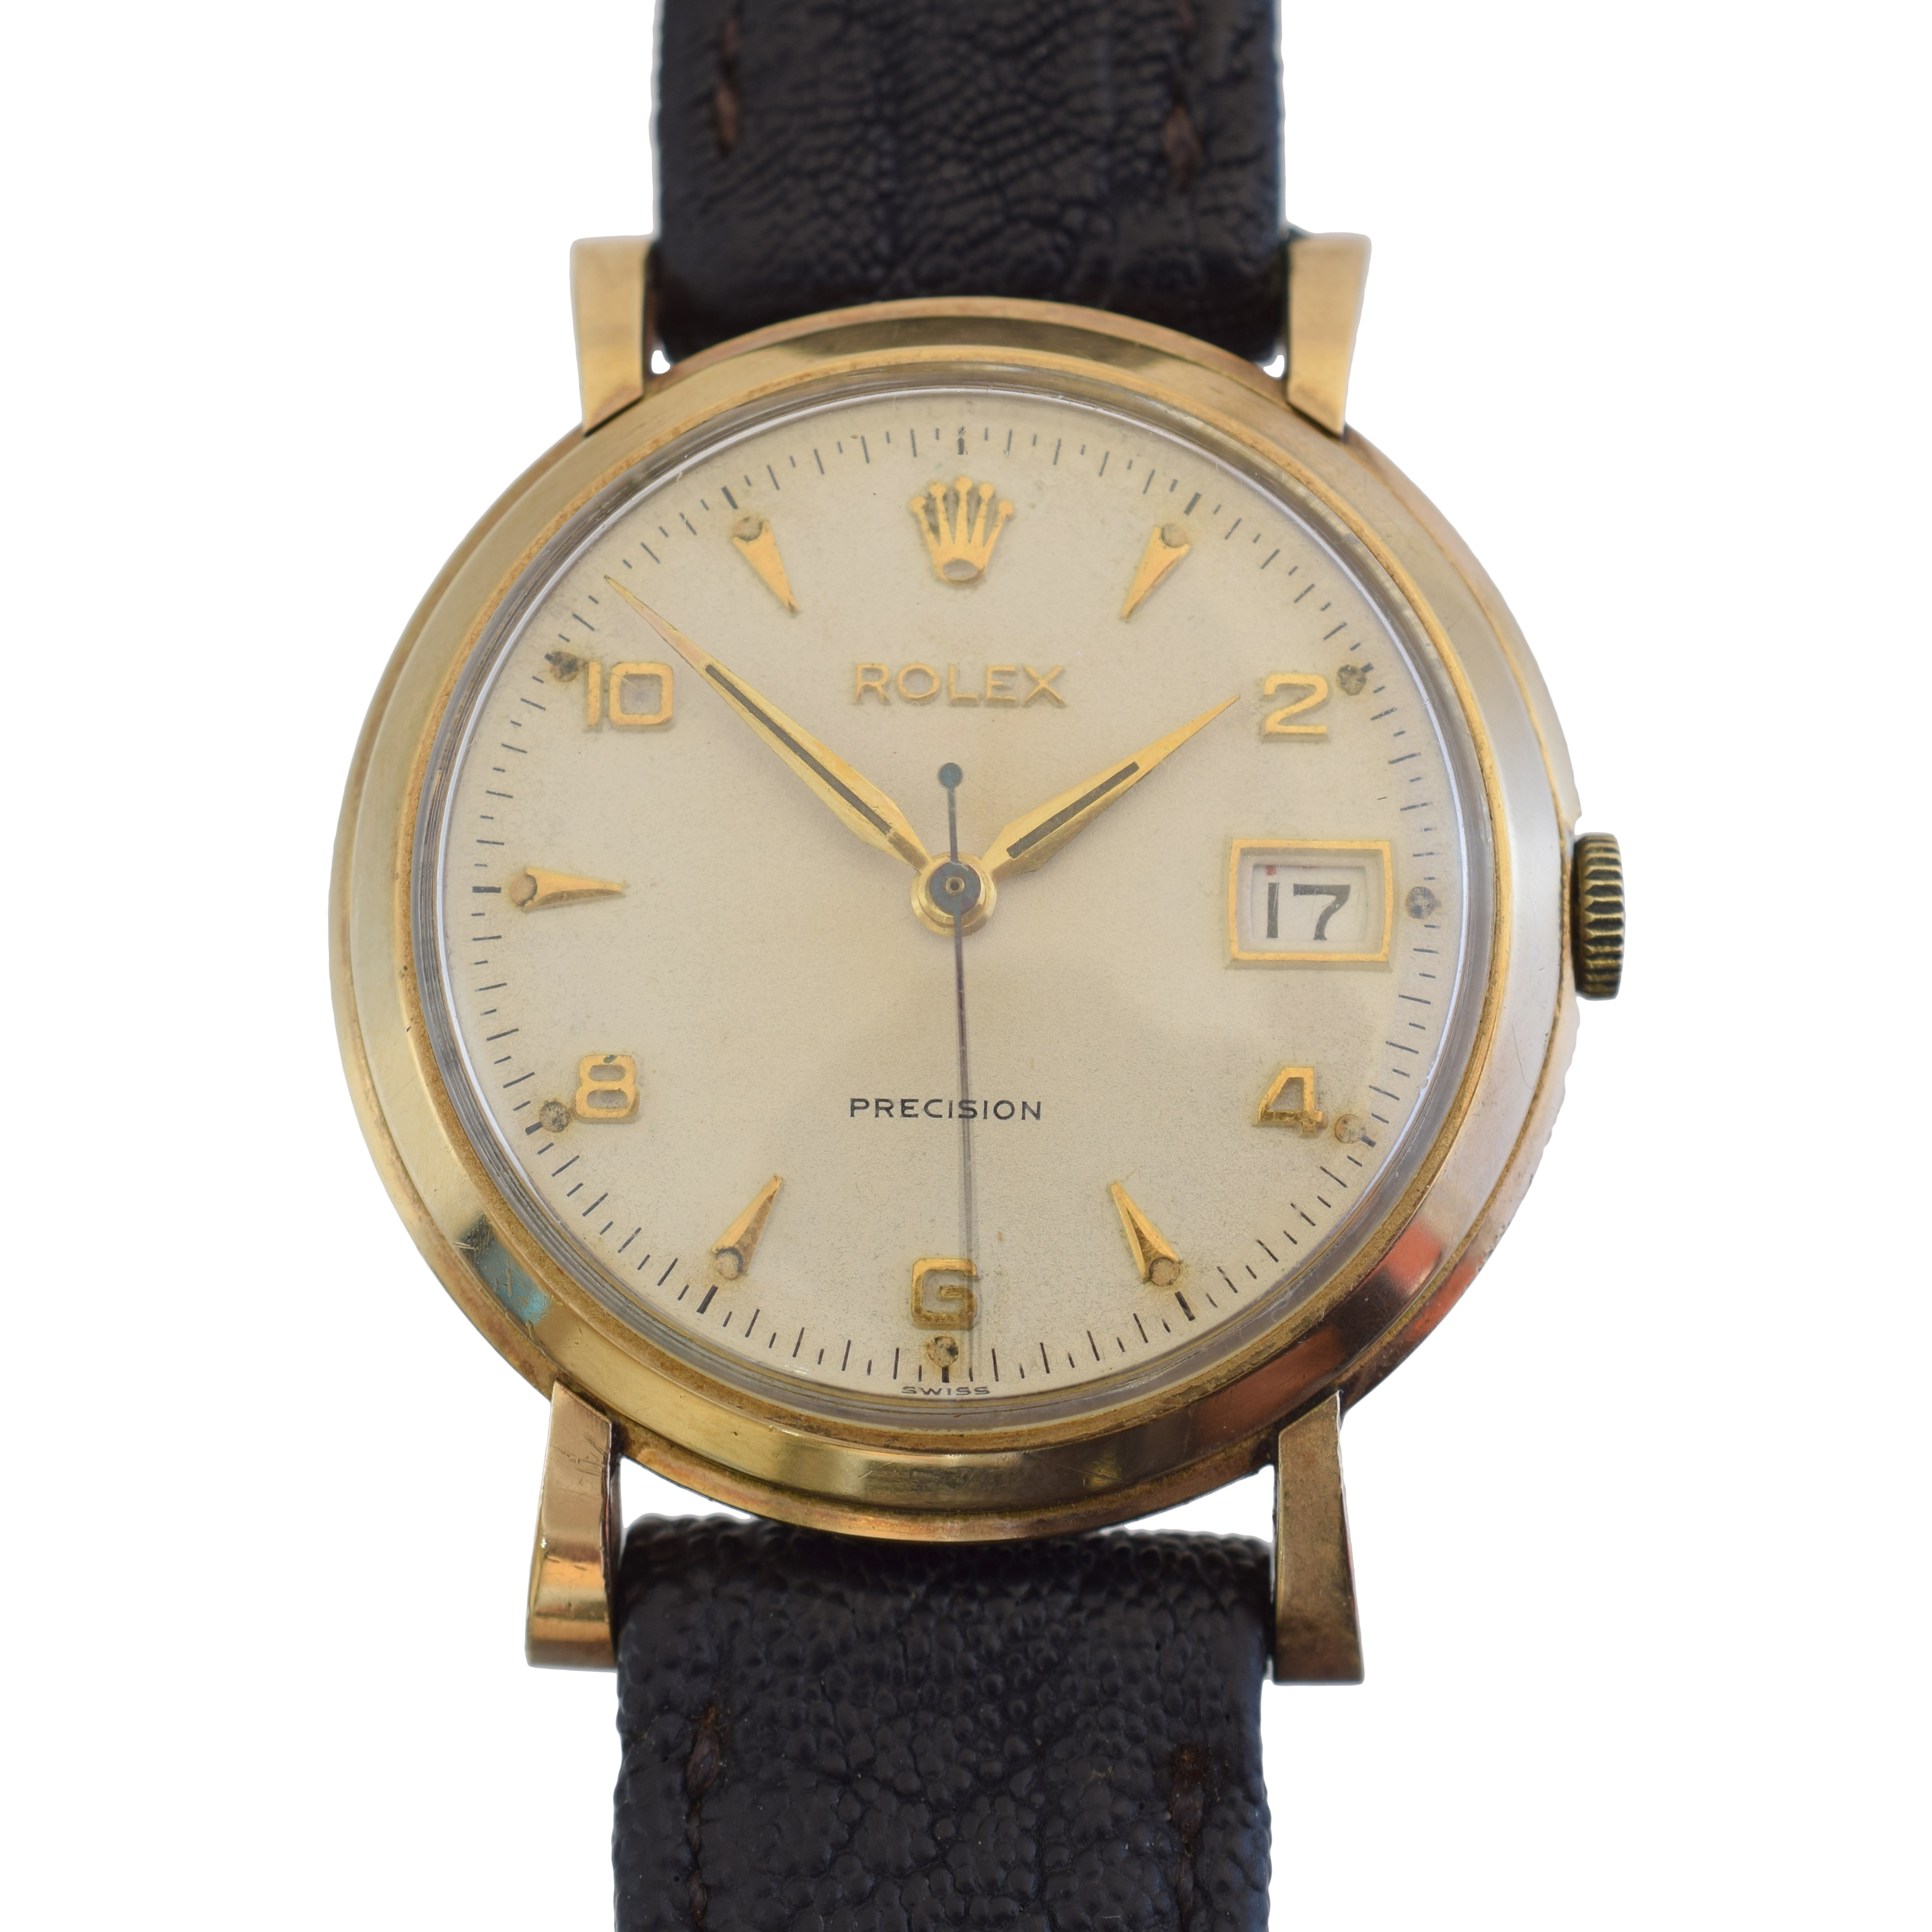 A 1950s 9ct gold cased Rolex Precision wristwatch, cal 1210, the circular signed dial with baton and Arabic hour markers, outer minutes track and red/black date aperture to 3, signed 17 jewel movement numbered 73337, within a 9ct gold case bearing hallmarks for London, 1954, numbered 238, and later leather strap, case diameter 33mm.